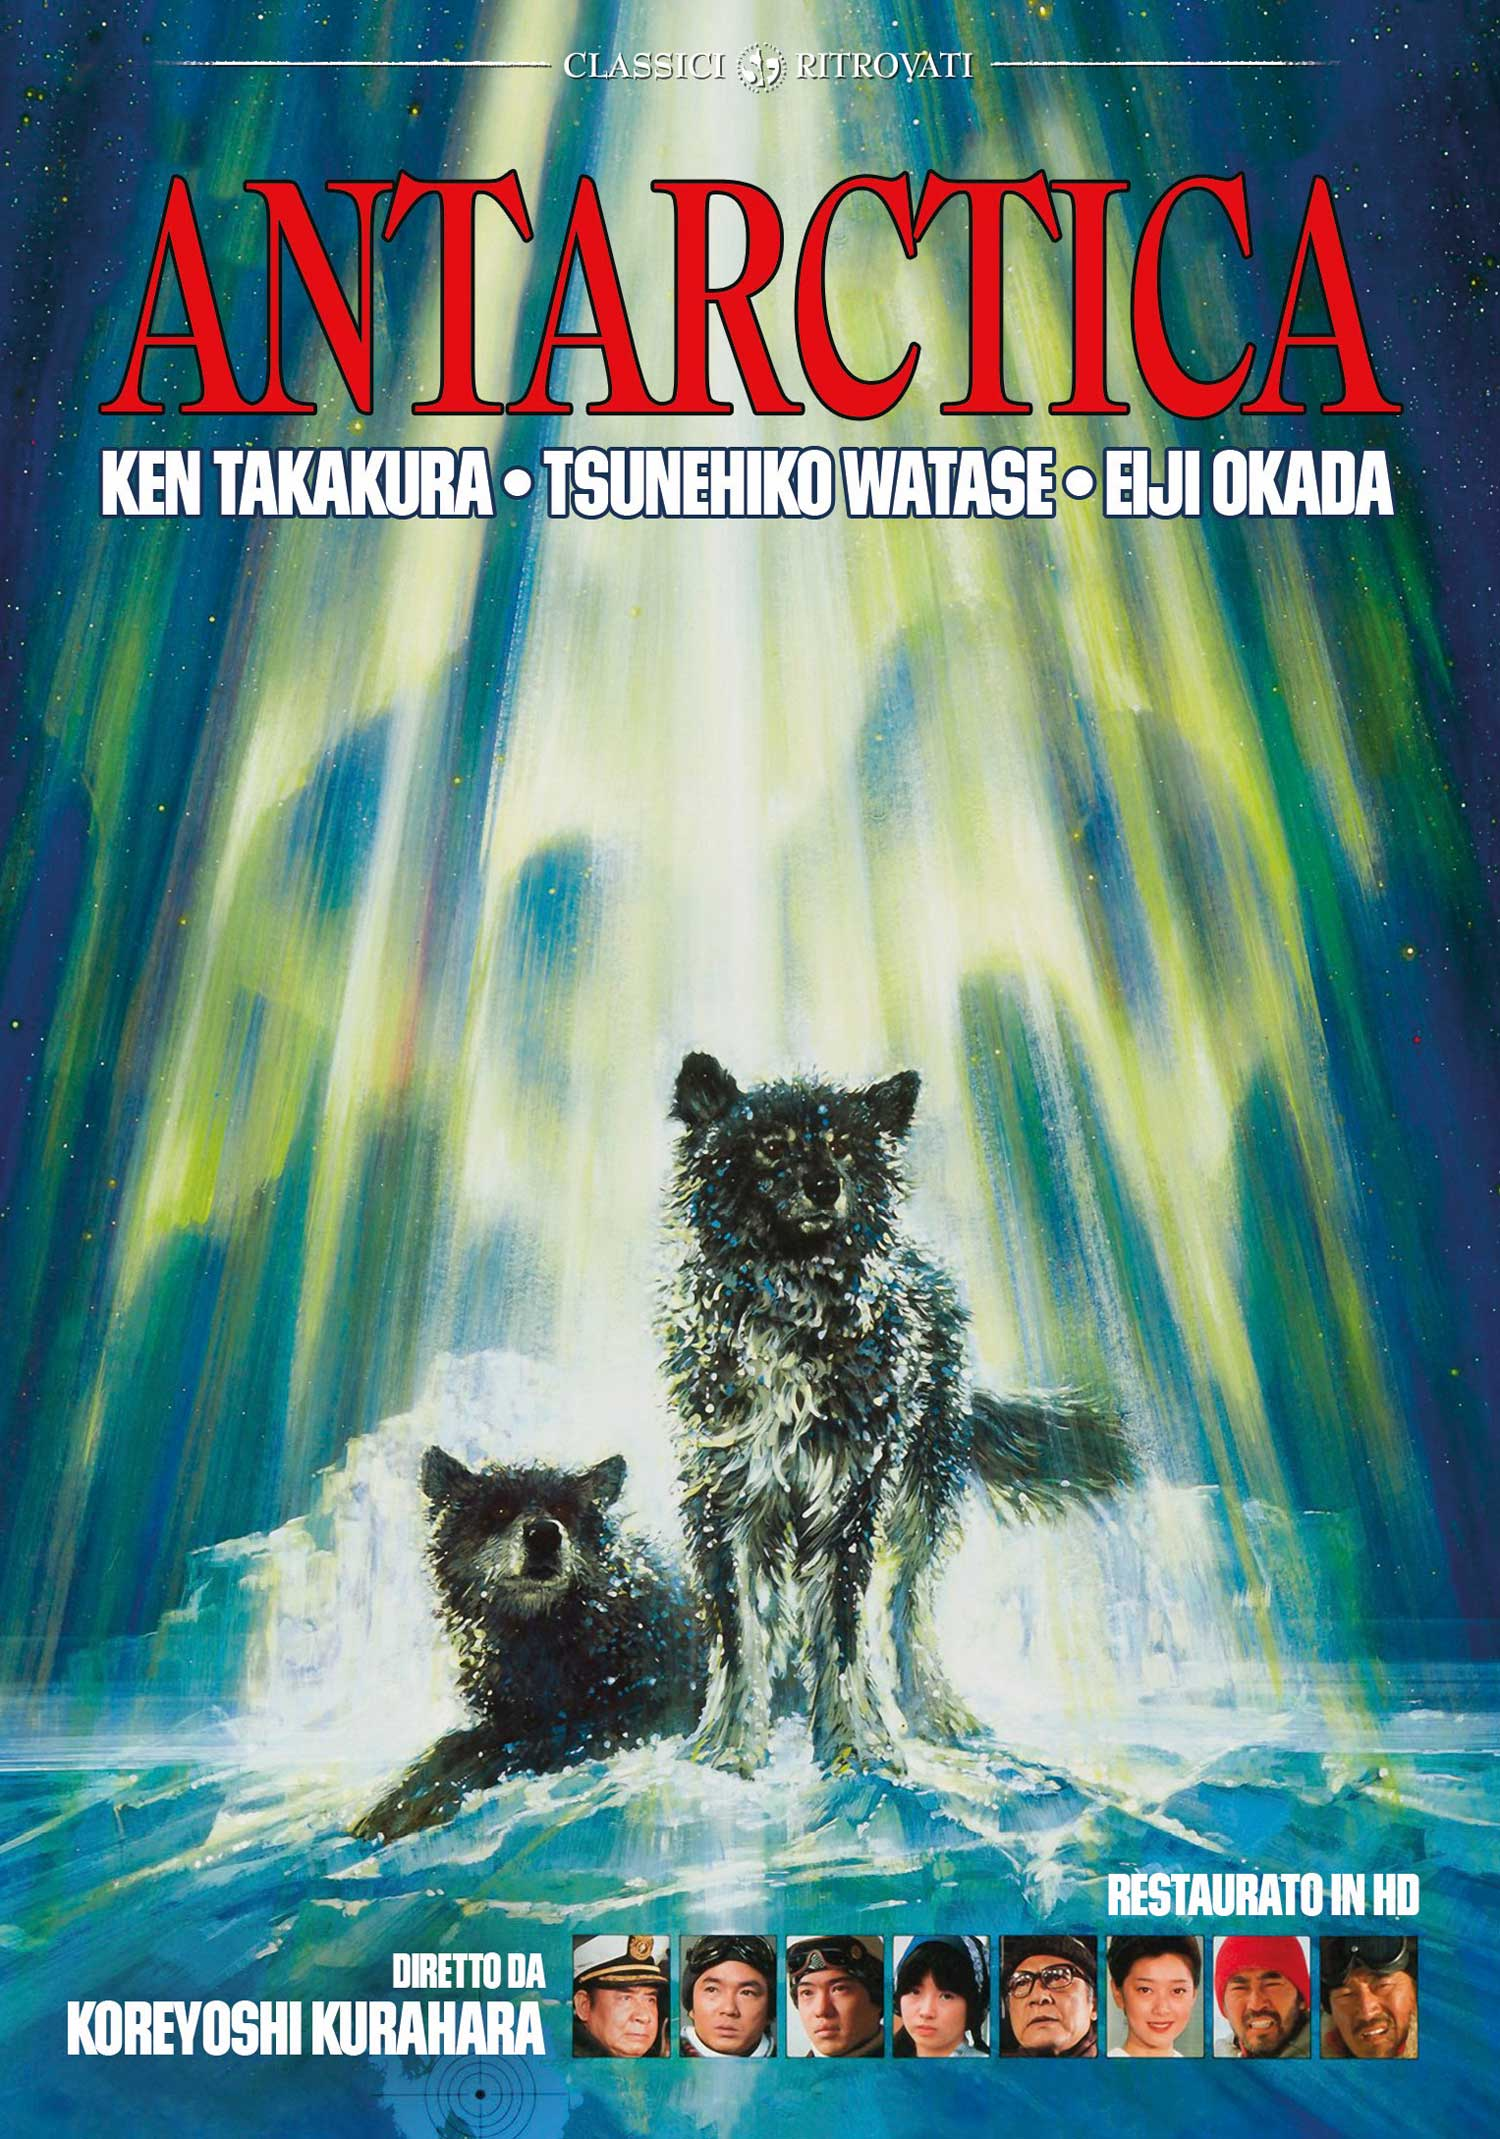 ANTARCTICA (RESTAURATO IN HD) (DVD)